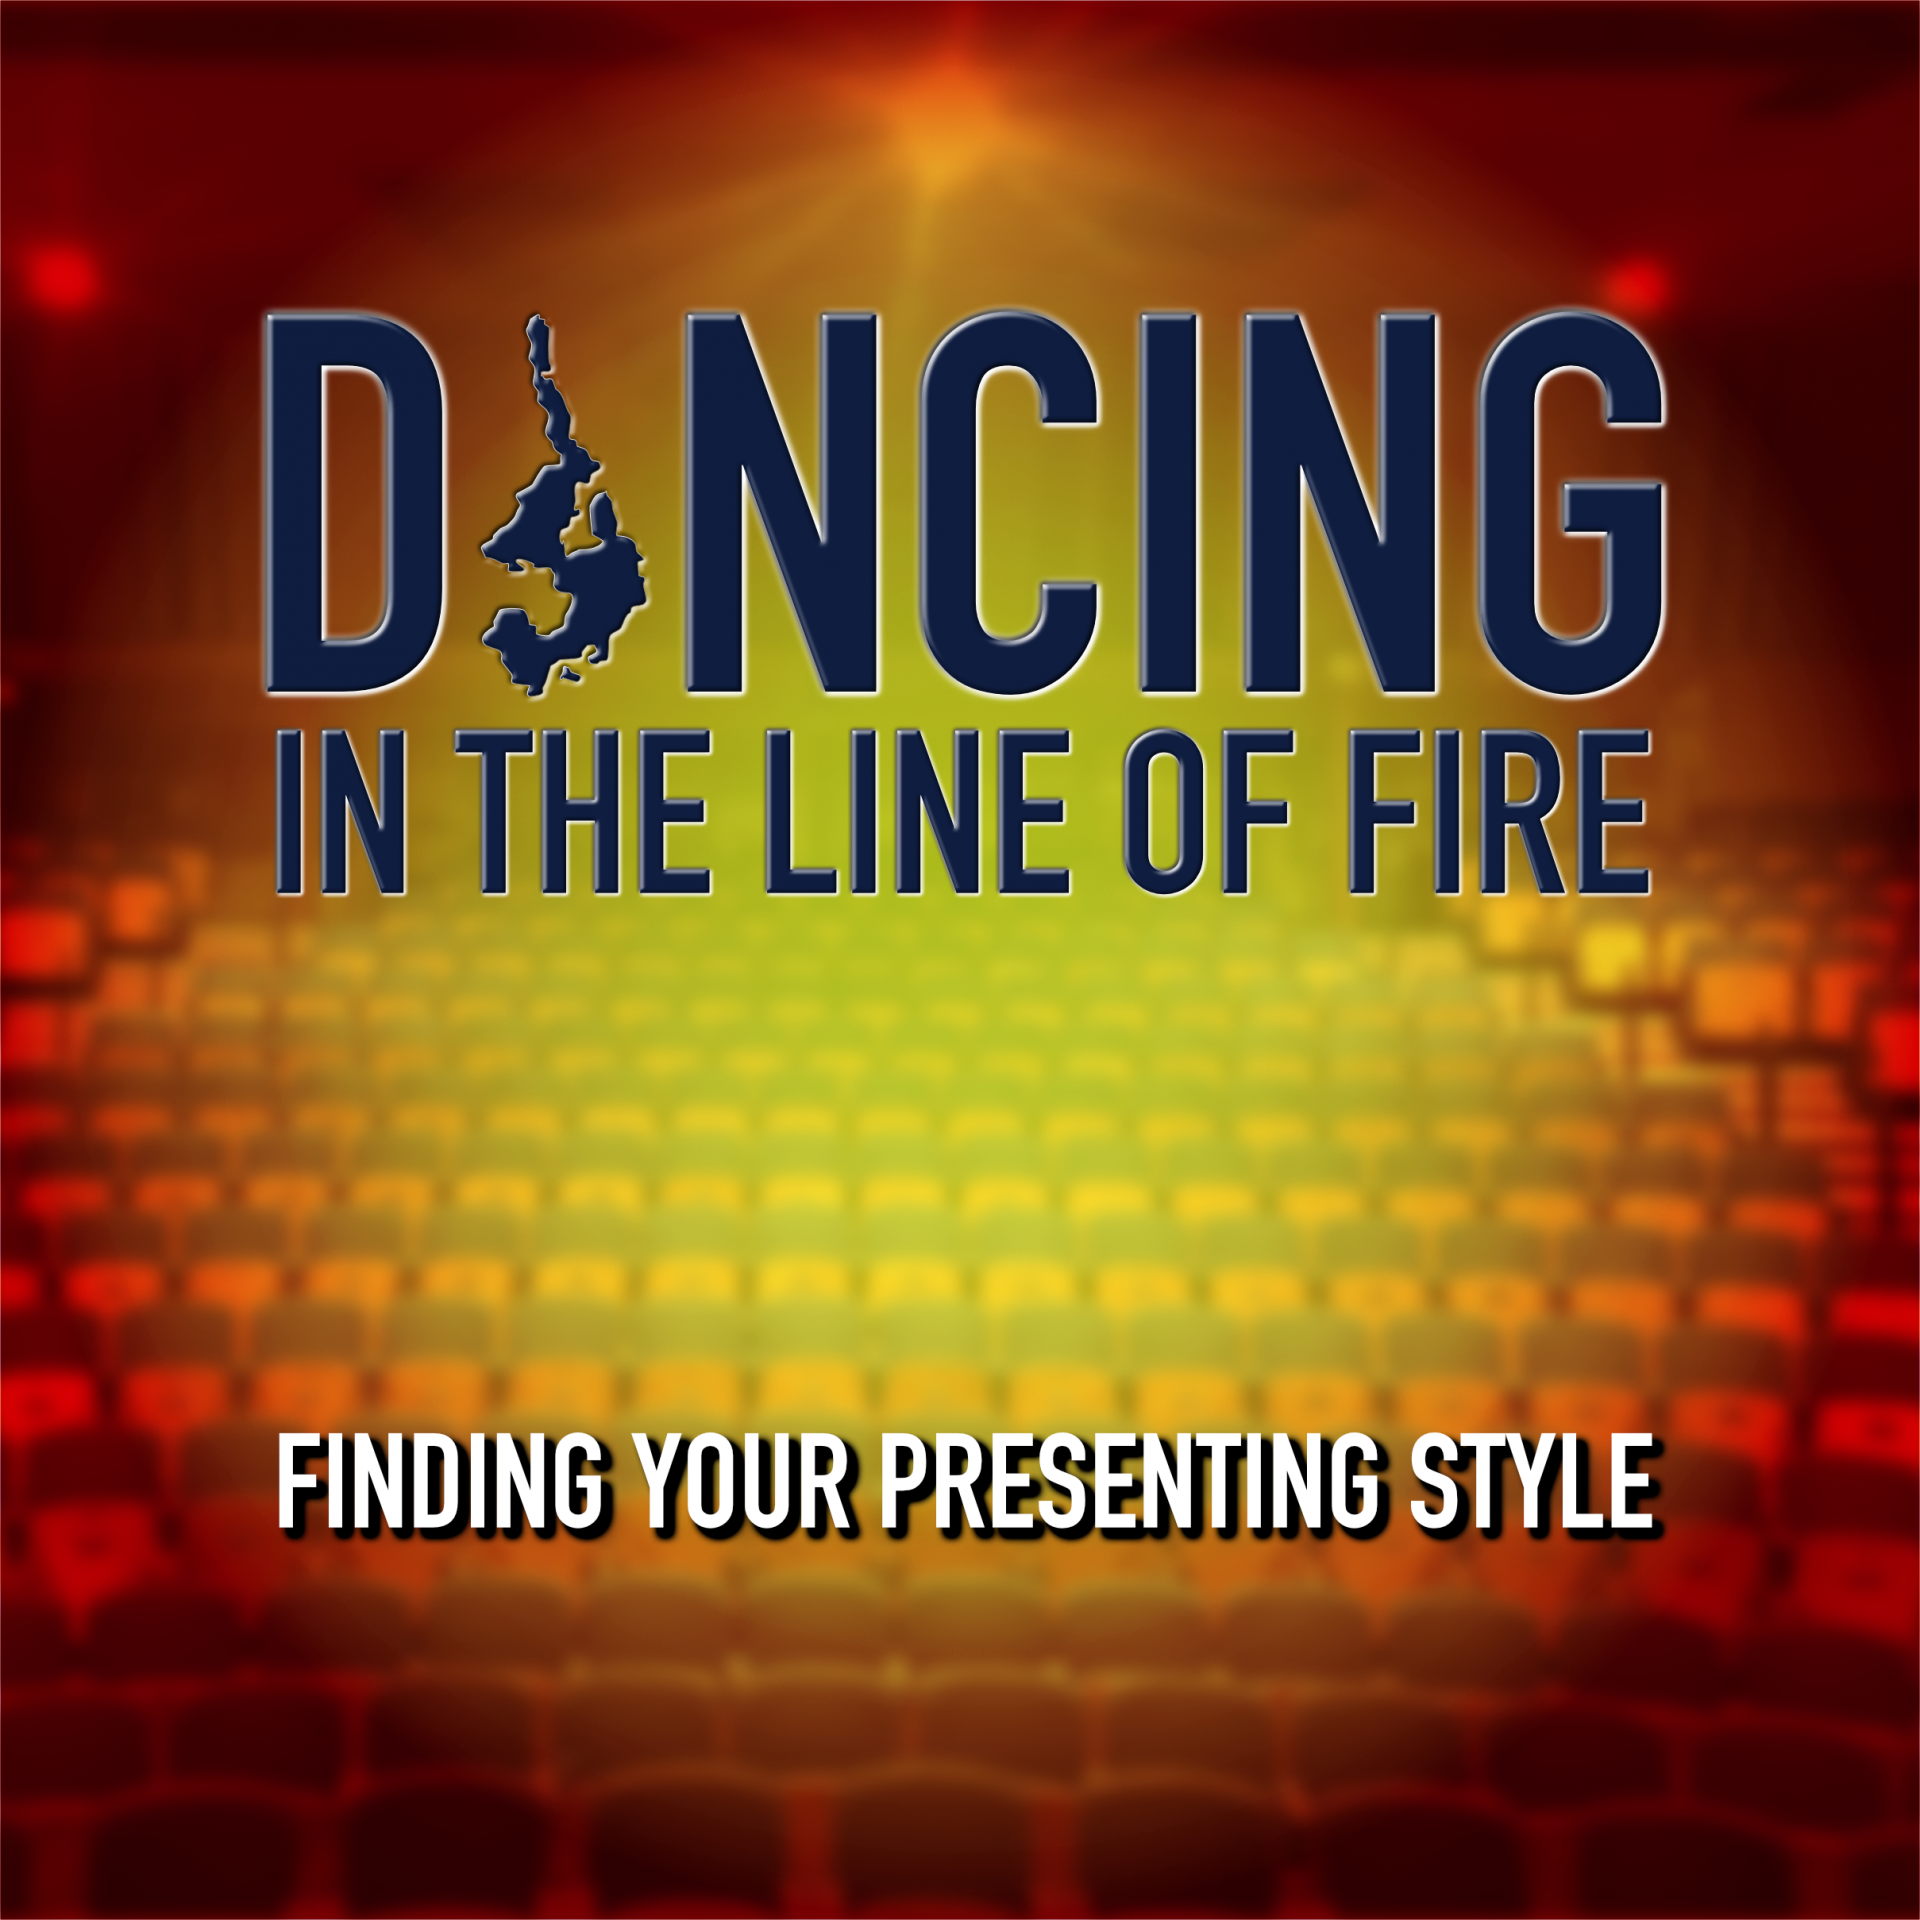 Dancing in the Line of Fire